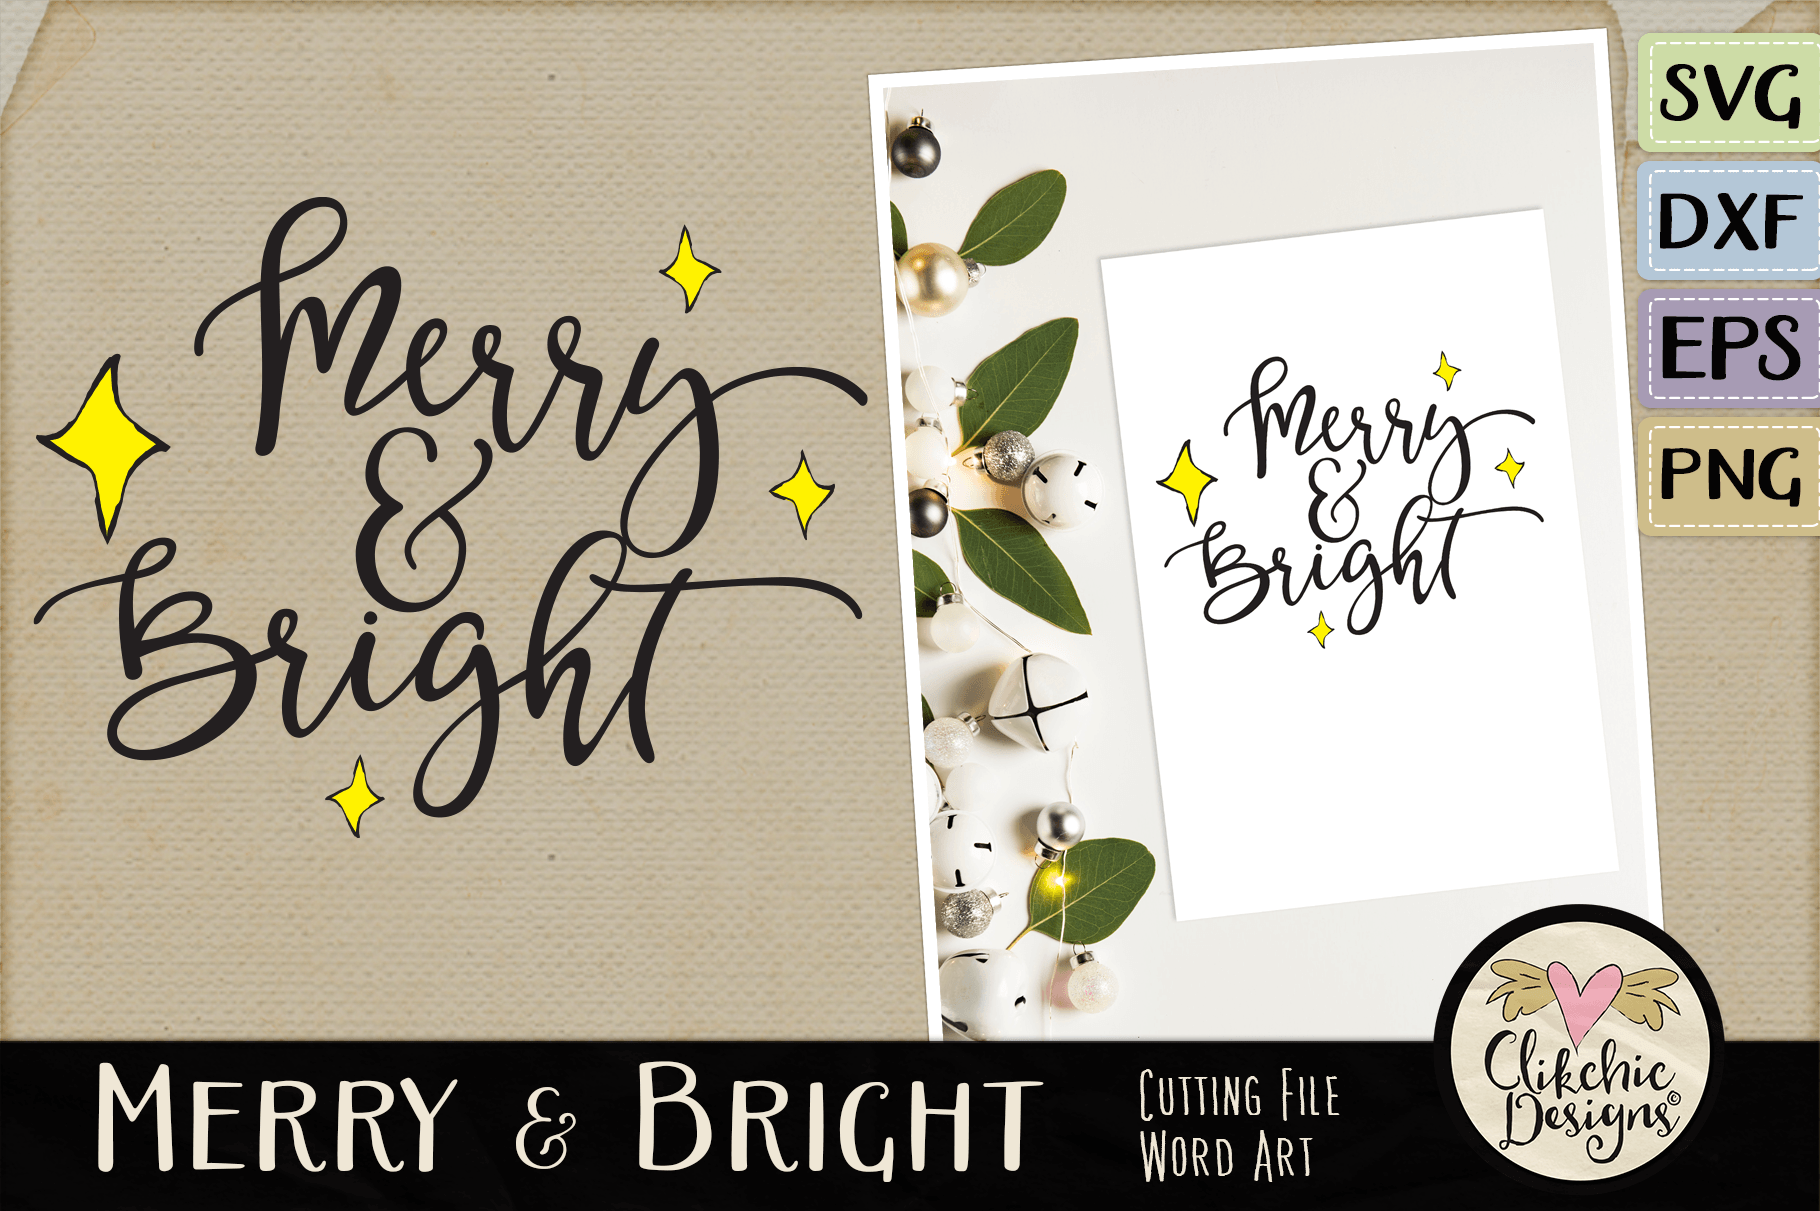 Christmas SVG - Merry & Bright Cutting file Clipart Word Art example image 1